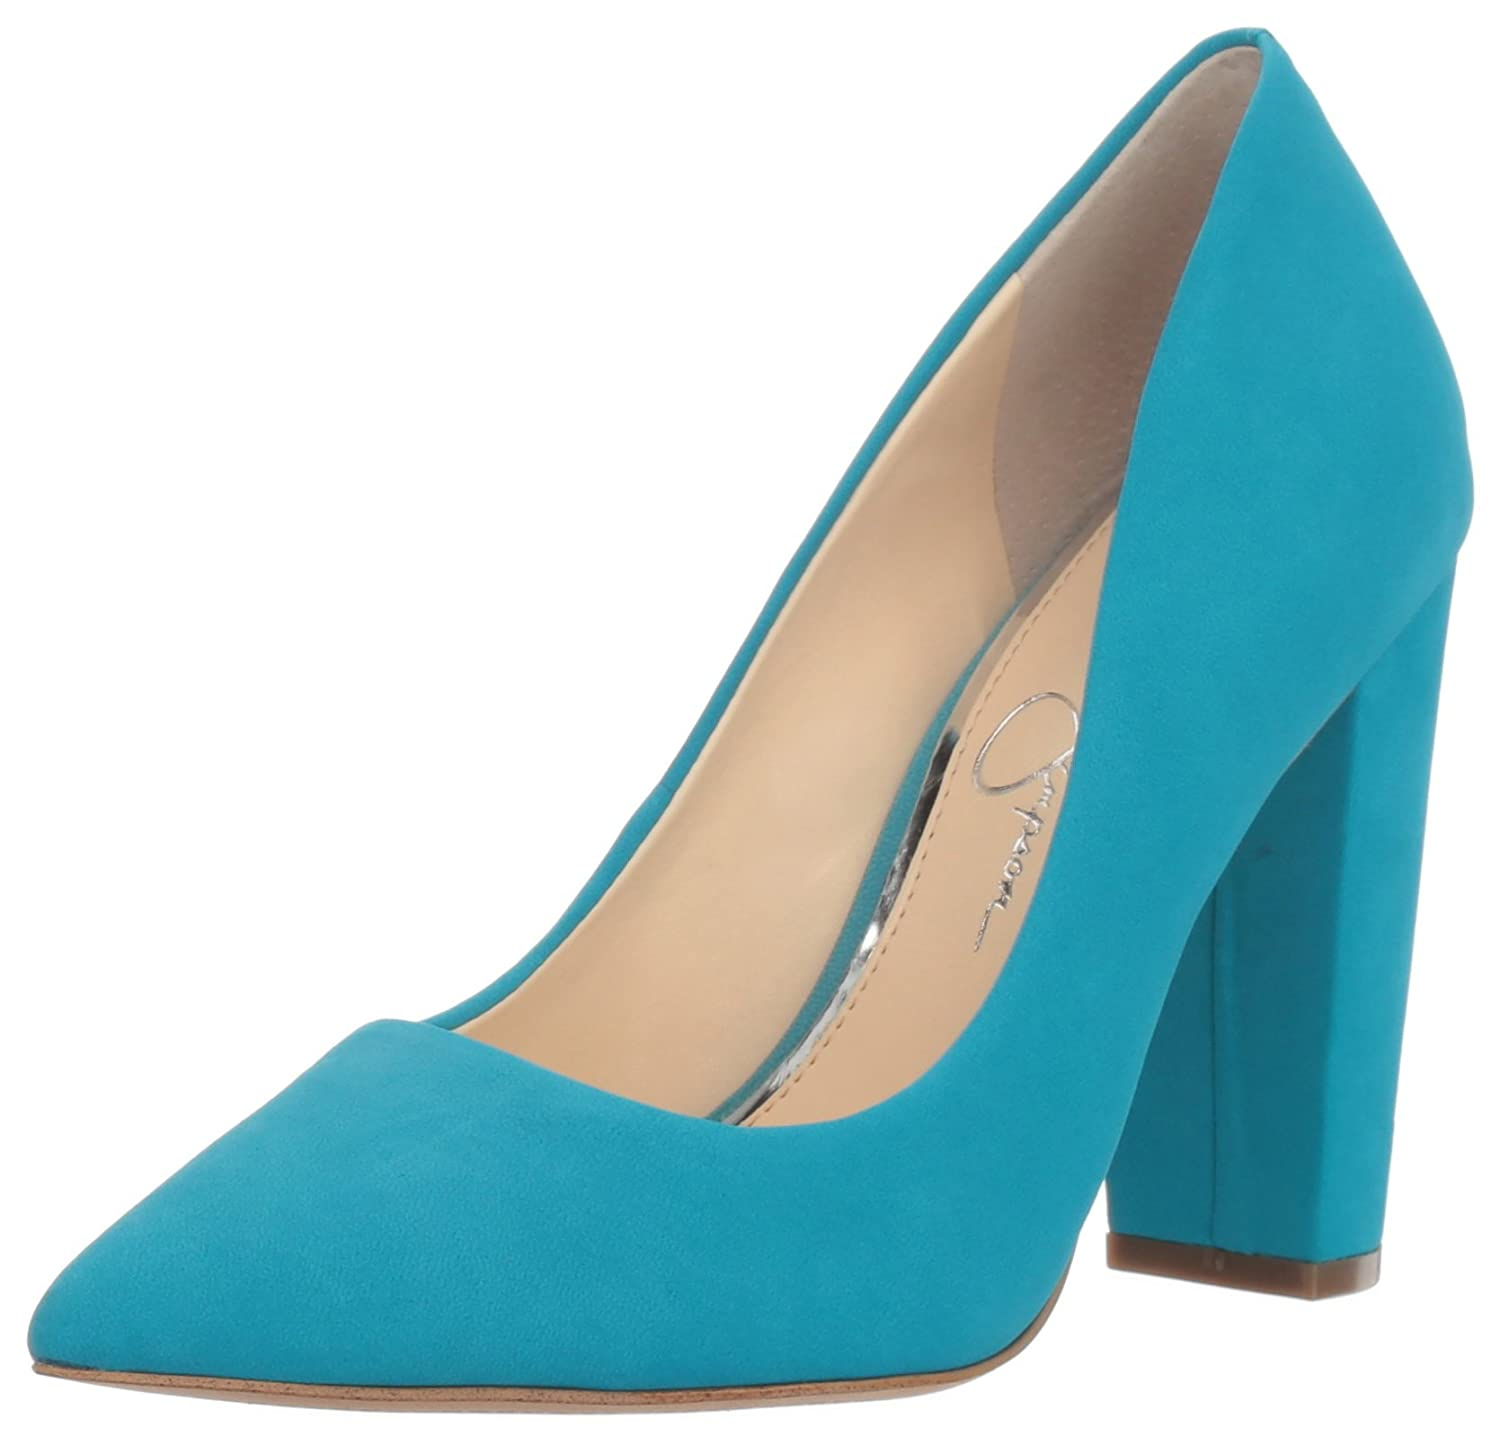 Jessica Simpson Women's Tanysha Dress Pump B01NA6K4R7 7.5 B(M) US|Oceanside